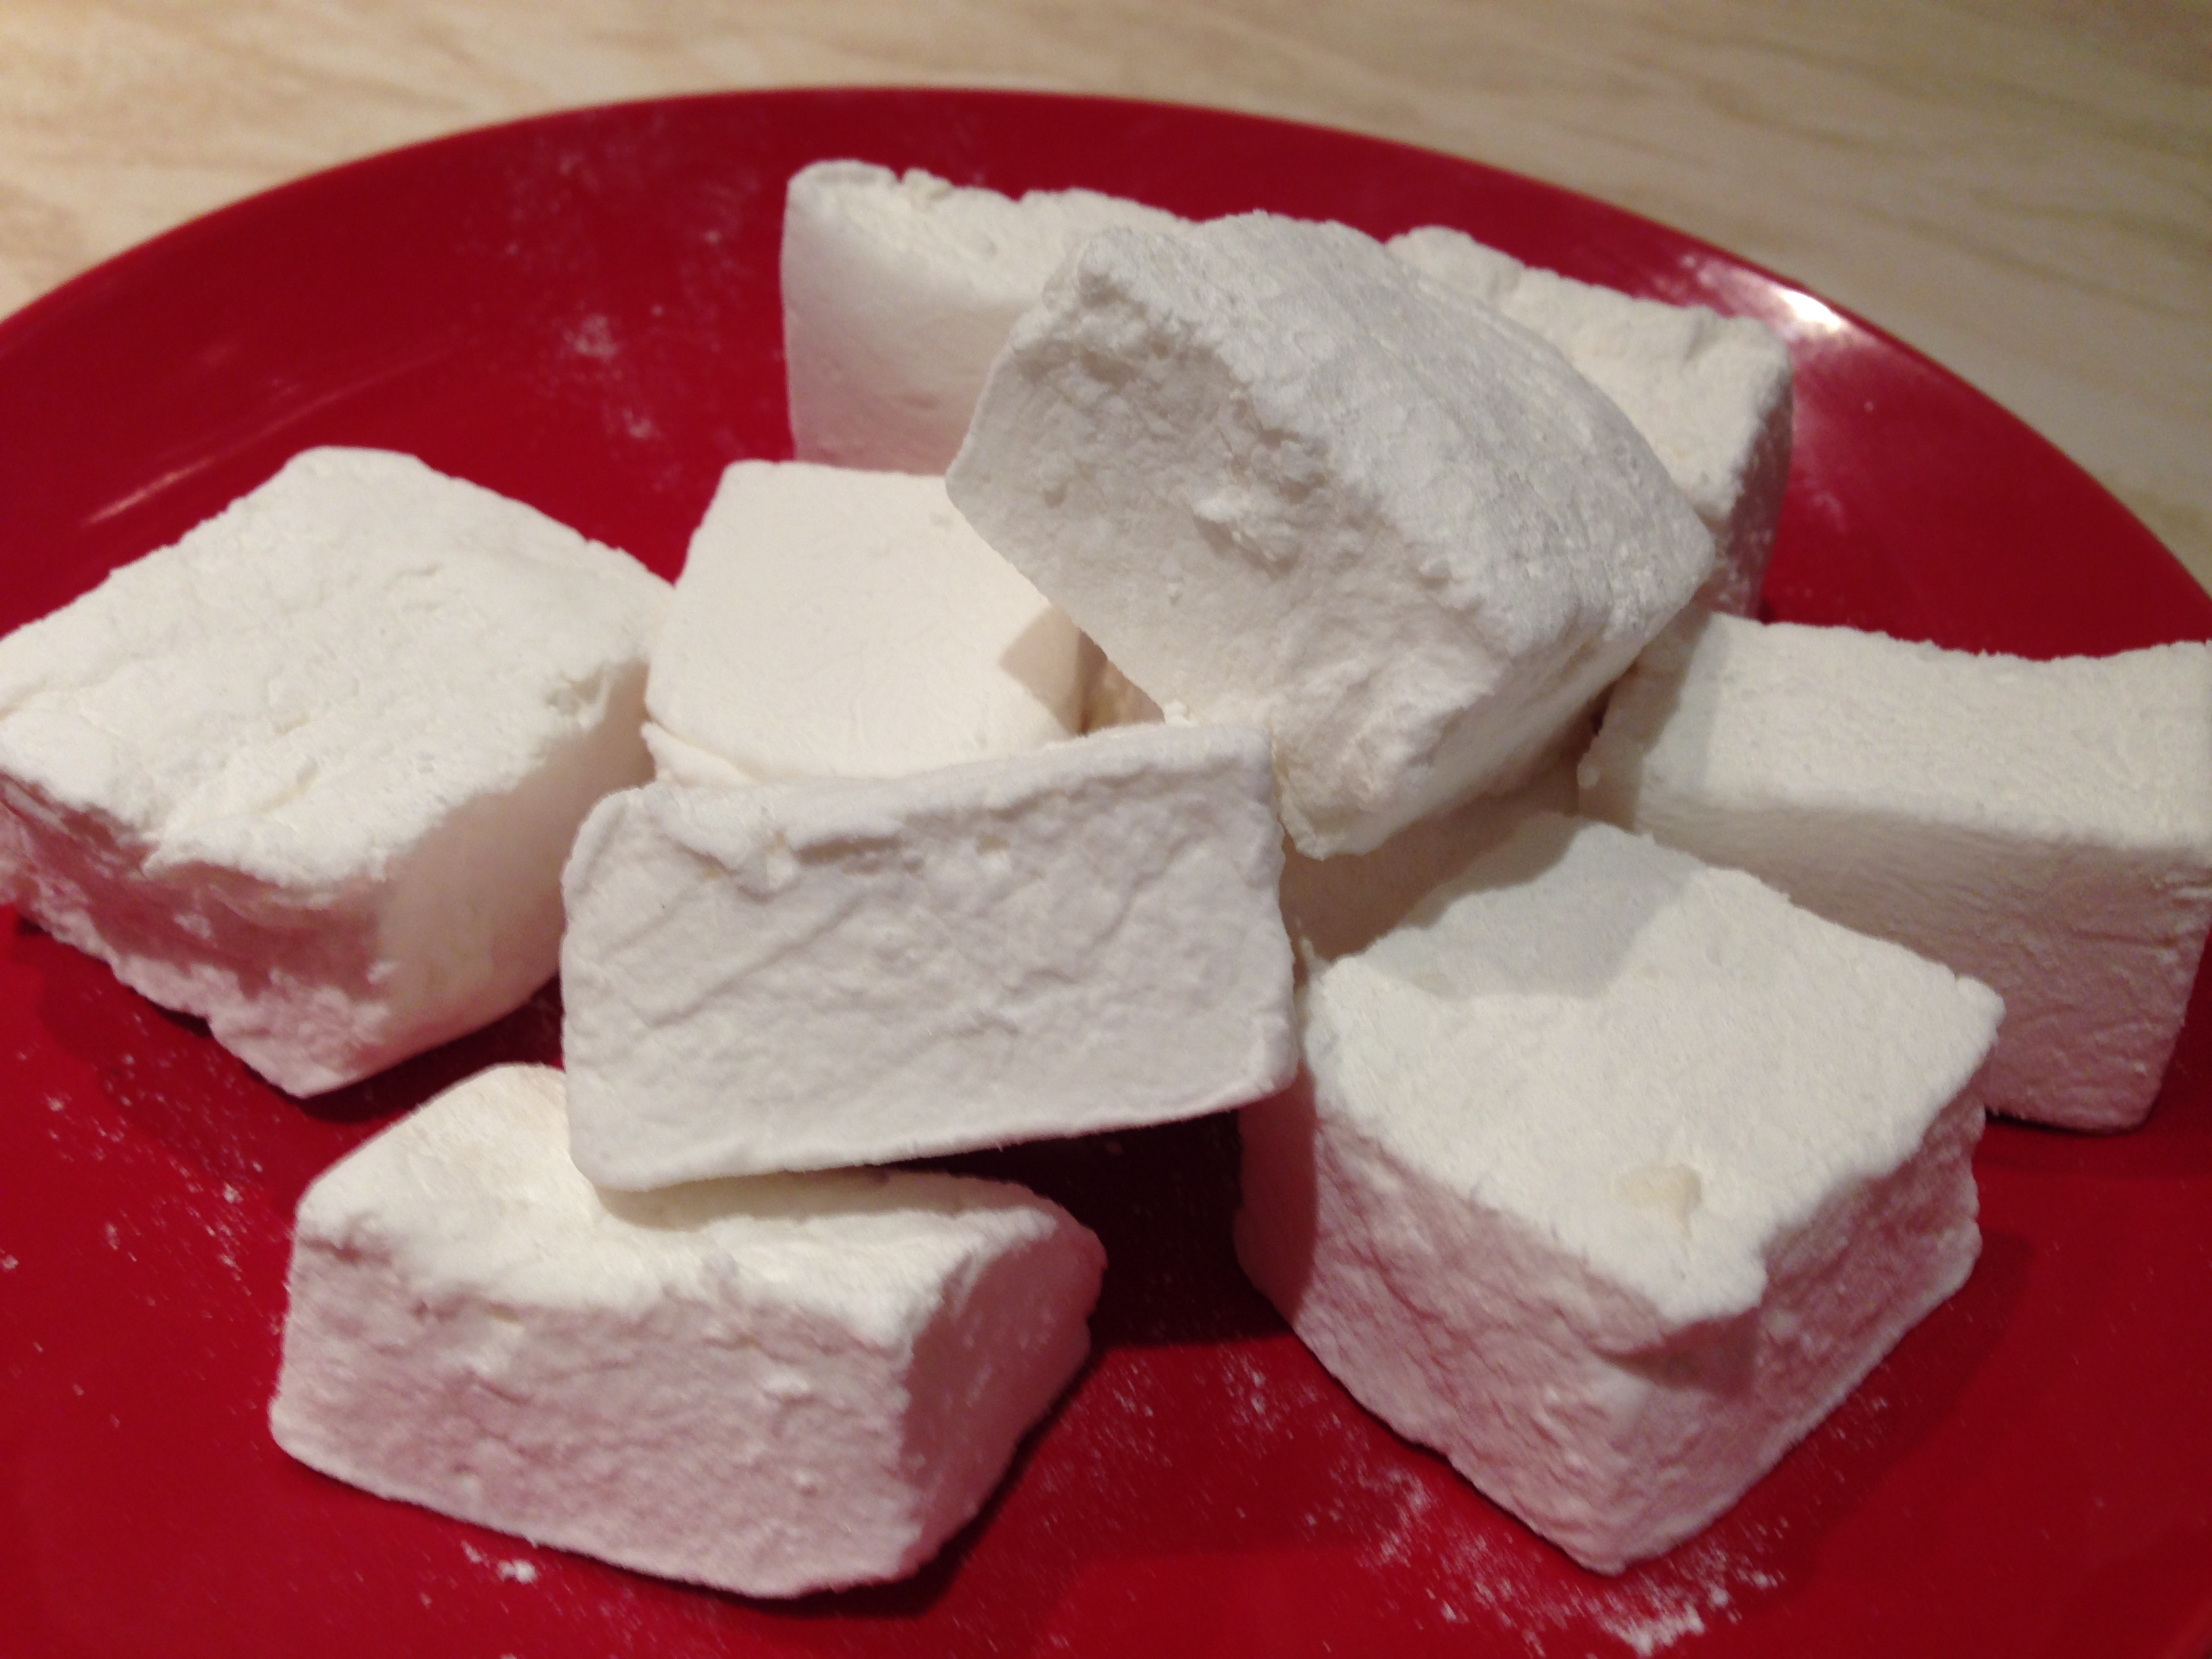 Home made marshmalow